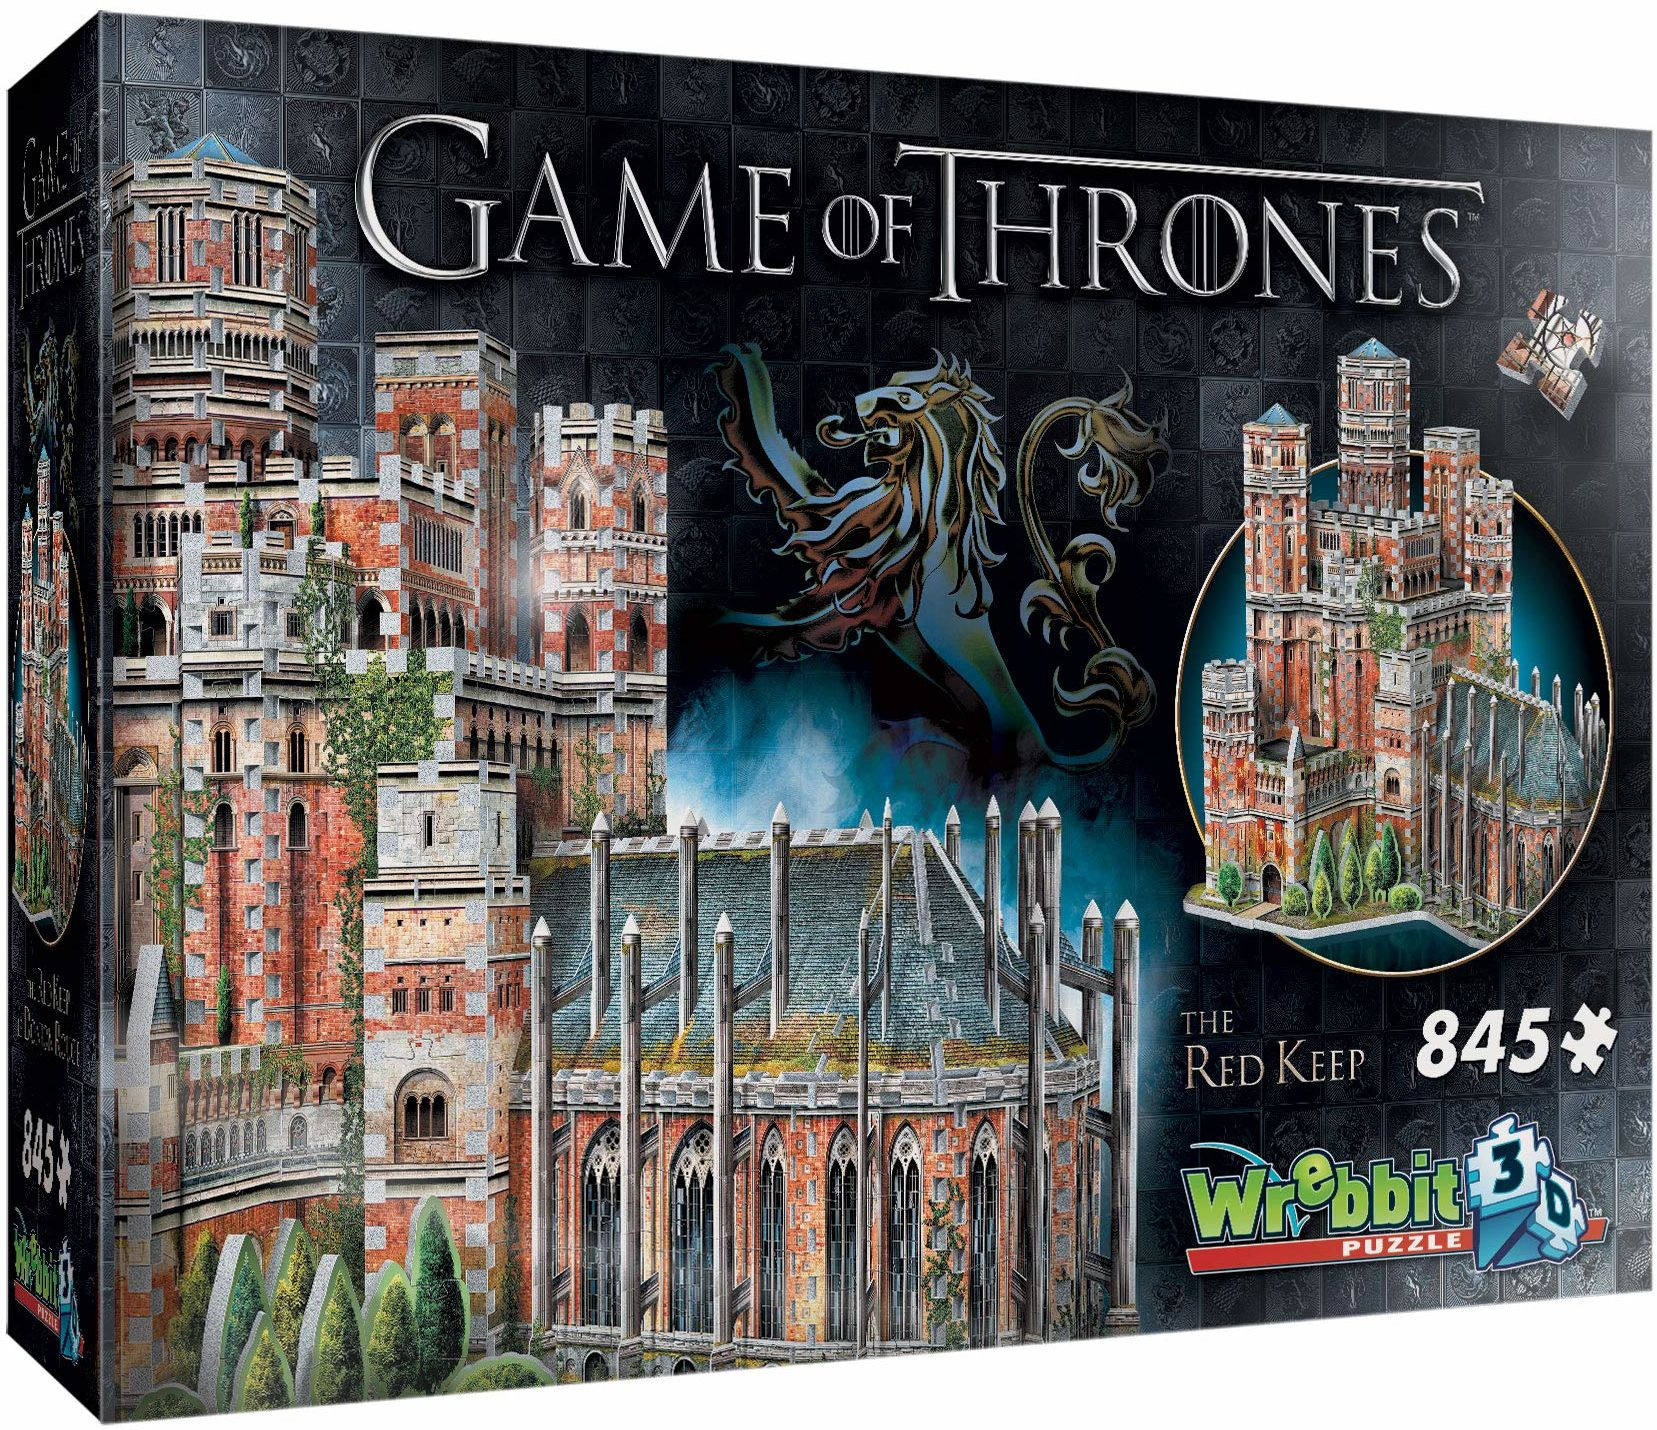 Roter Bergfried/The Red Keep - Game of Thrones. Puzzle 845 Teile: 3D-PUZZLE